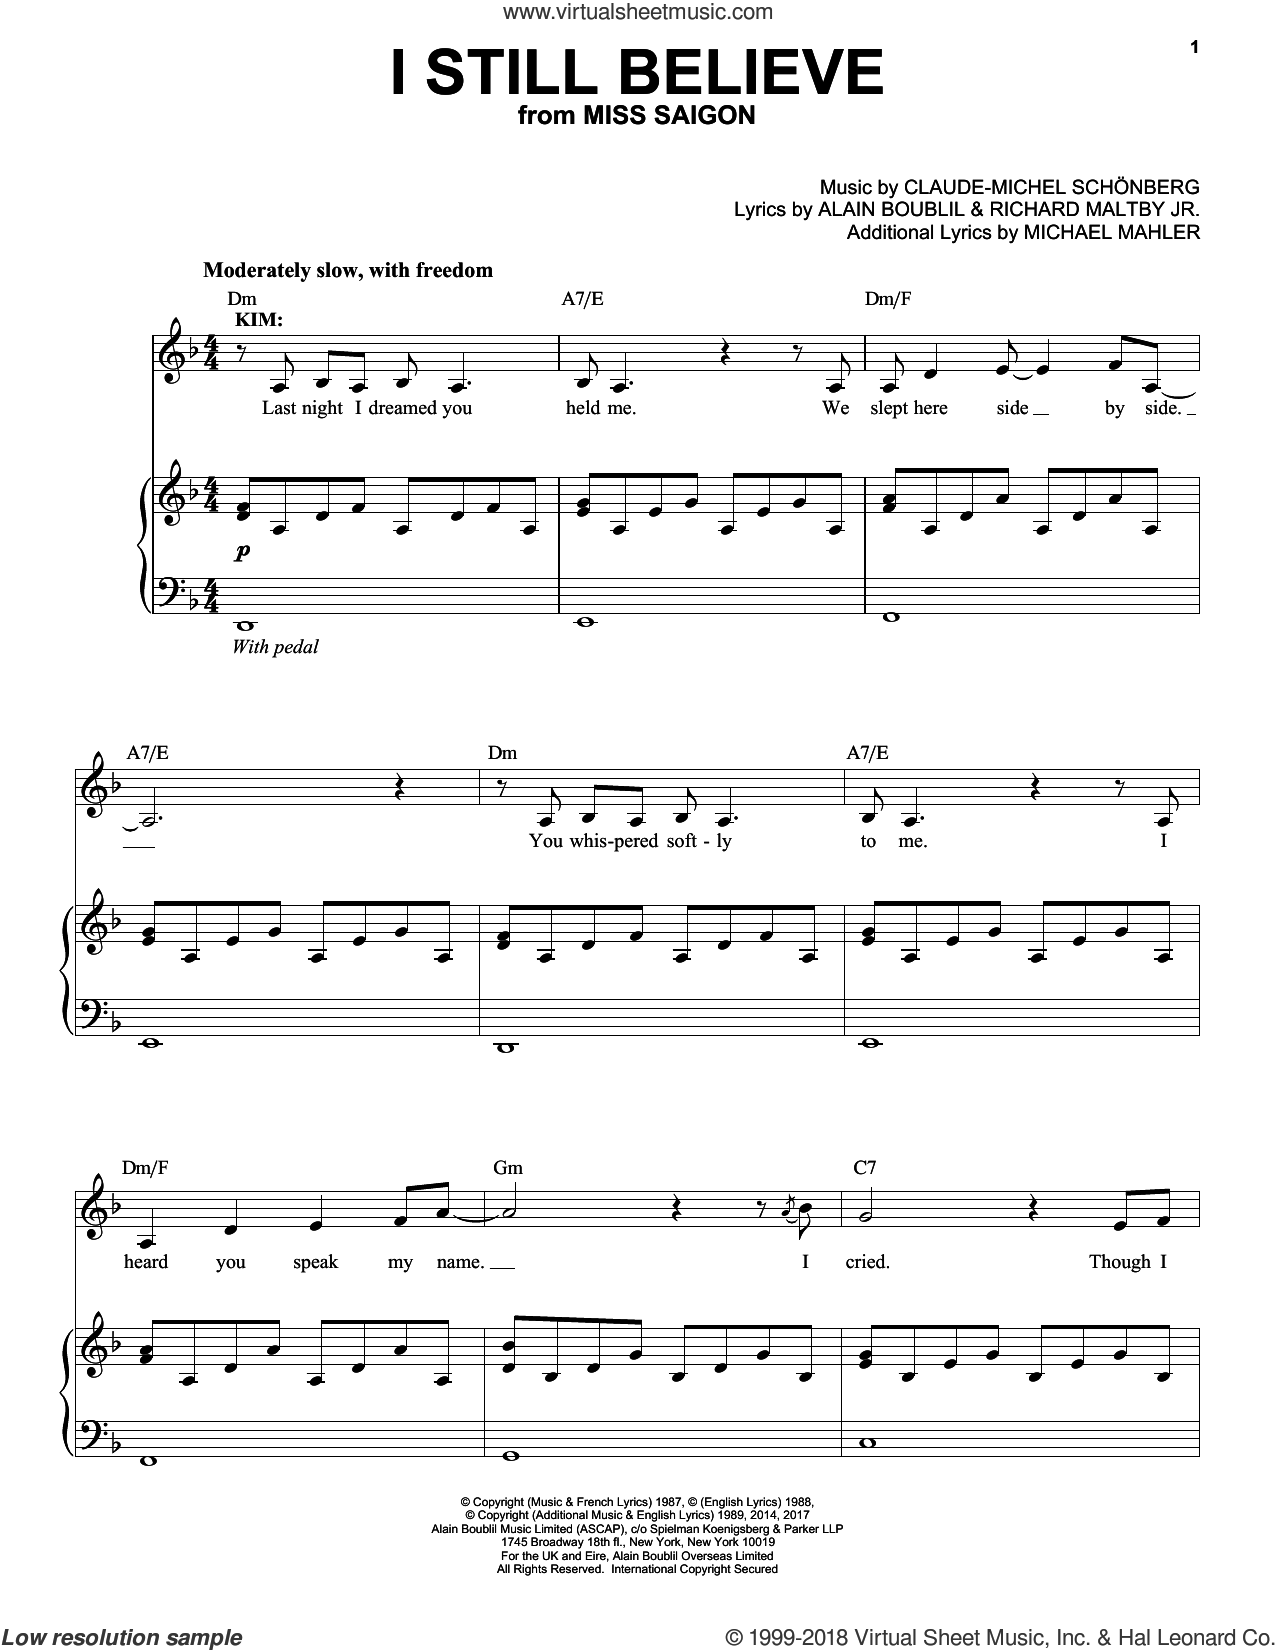 I Still Believe sheet music for voice and piano by Alain Boublil, Claude-Michel Schonberg, Claude-Michel Schonberg, Michael Mahler and Richard Maltby, Jr., intermediate skill level